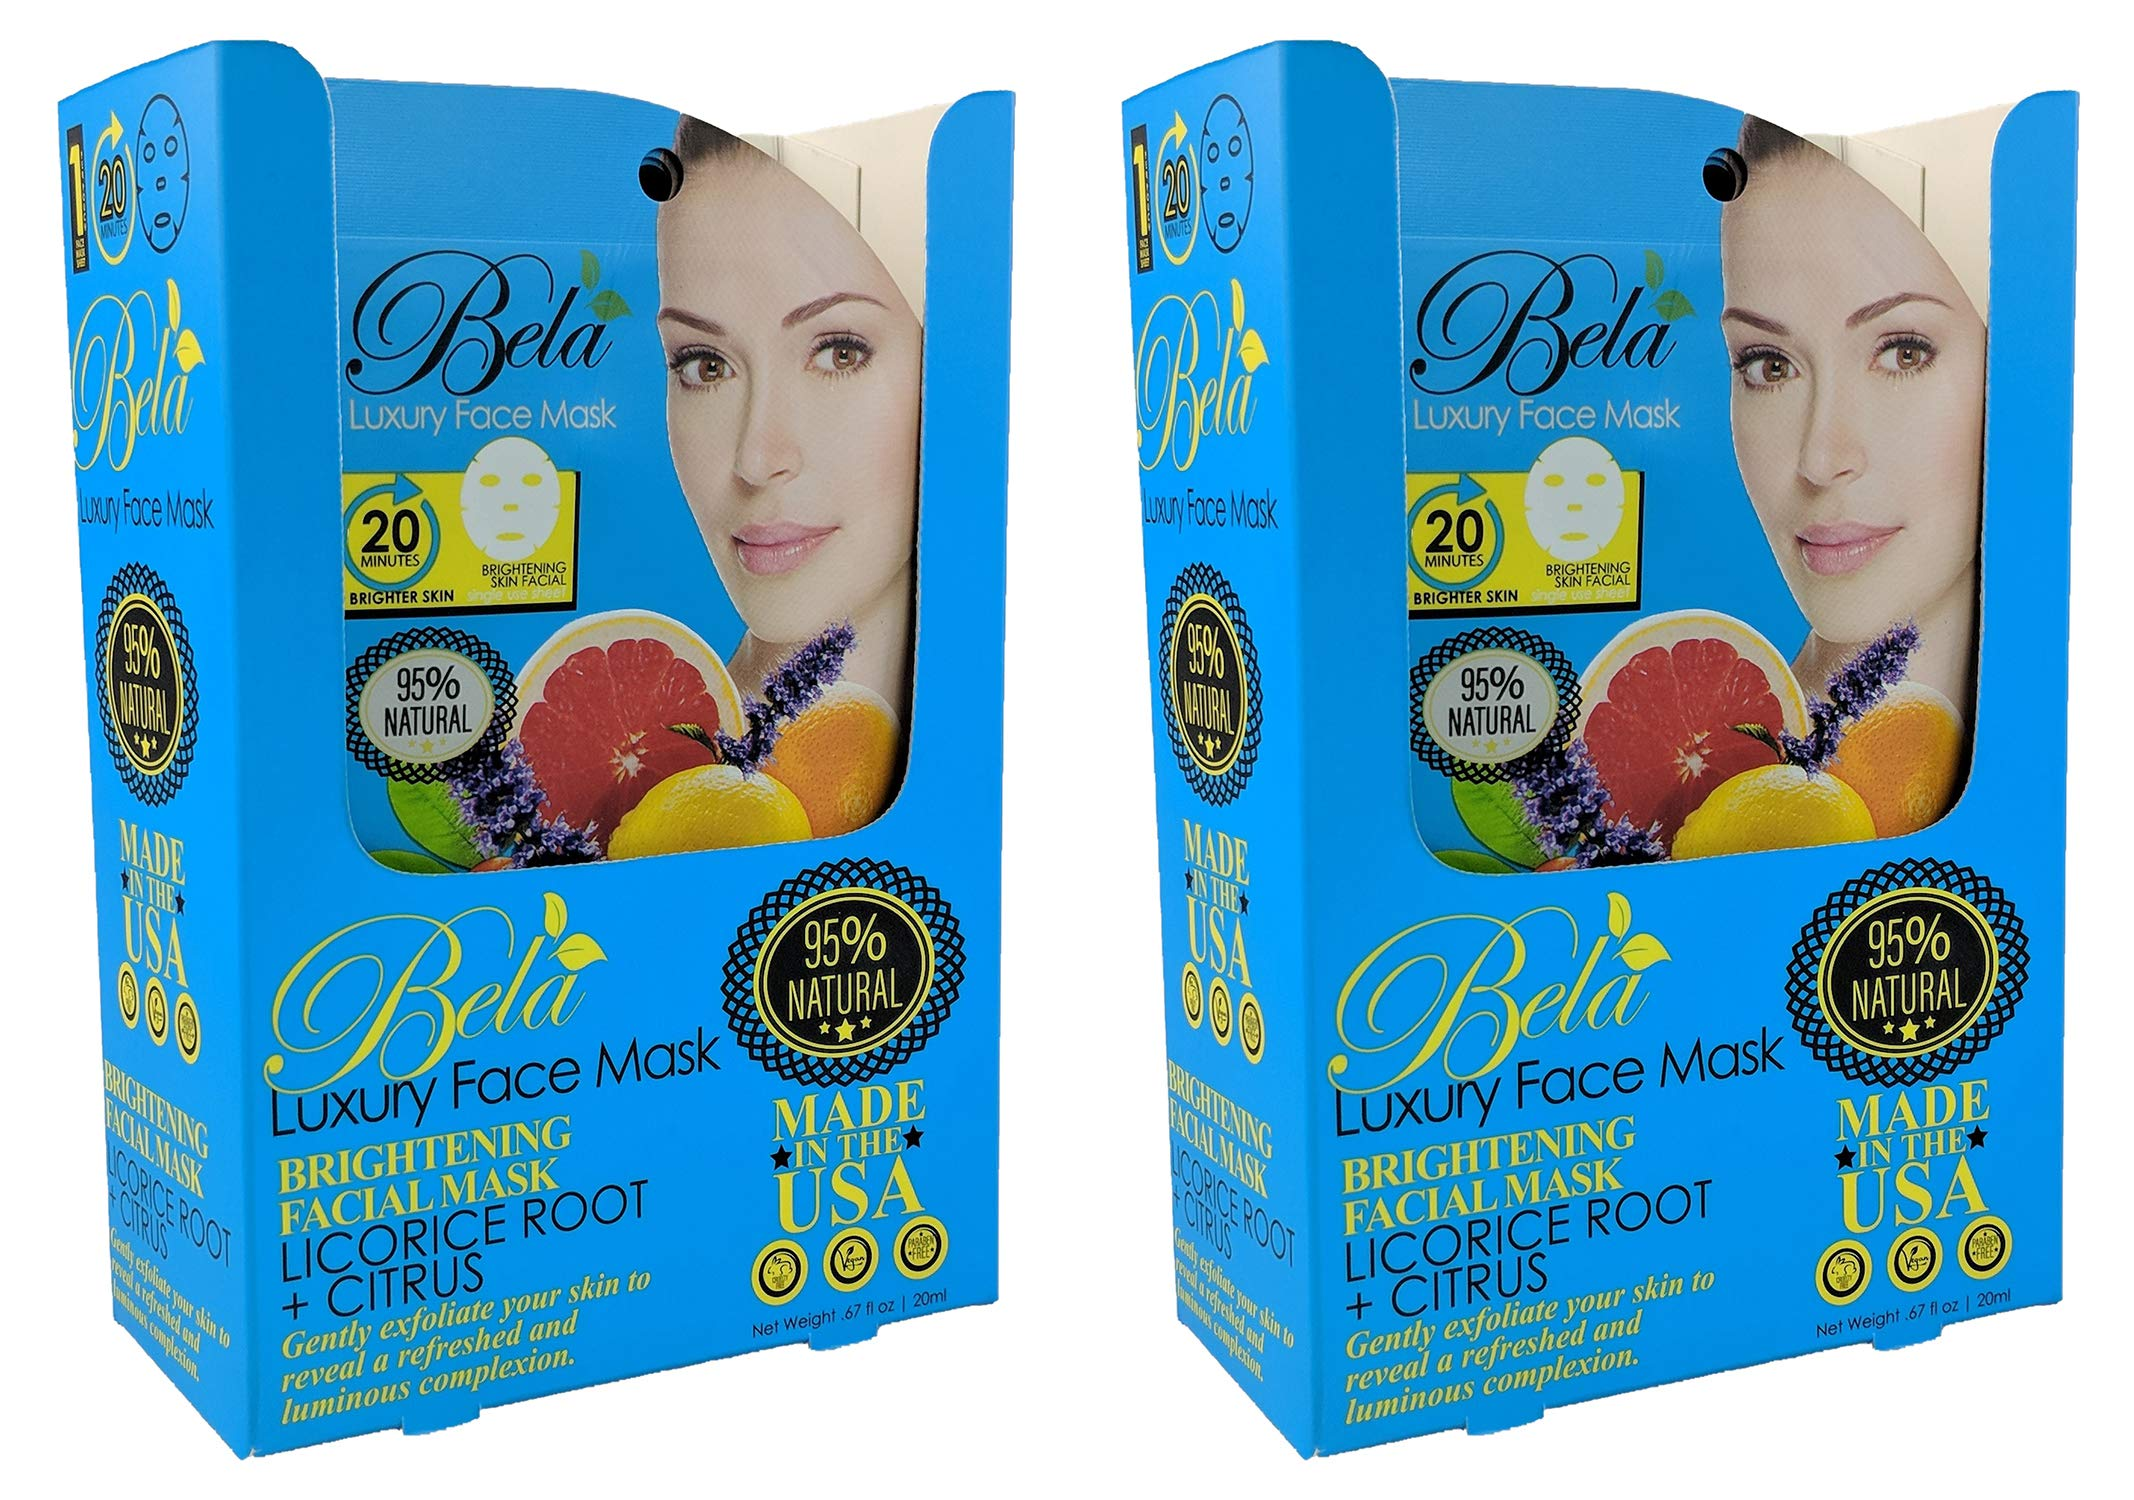 BELA PURE NATURAL SOAPS AND ODOR ELIMINATING HOME FRAGRANCES - Bela Luxury Face Mask Sheets - Brightening Formula - 24 Face Masks - 2, 12 Piece PDQ Trays (Brightening Formula) 24 Count, Retail Ready